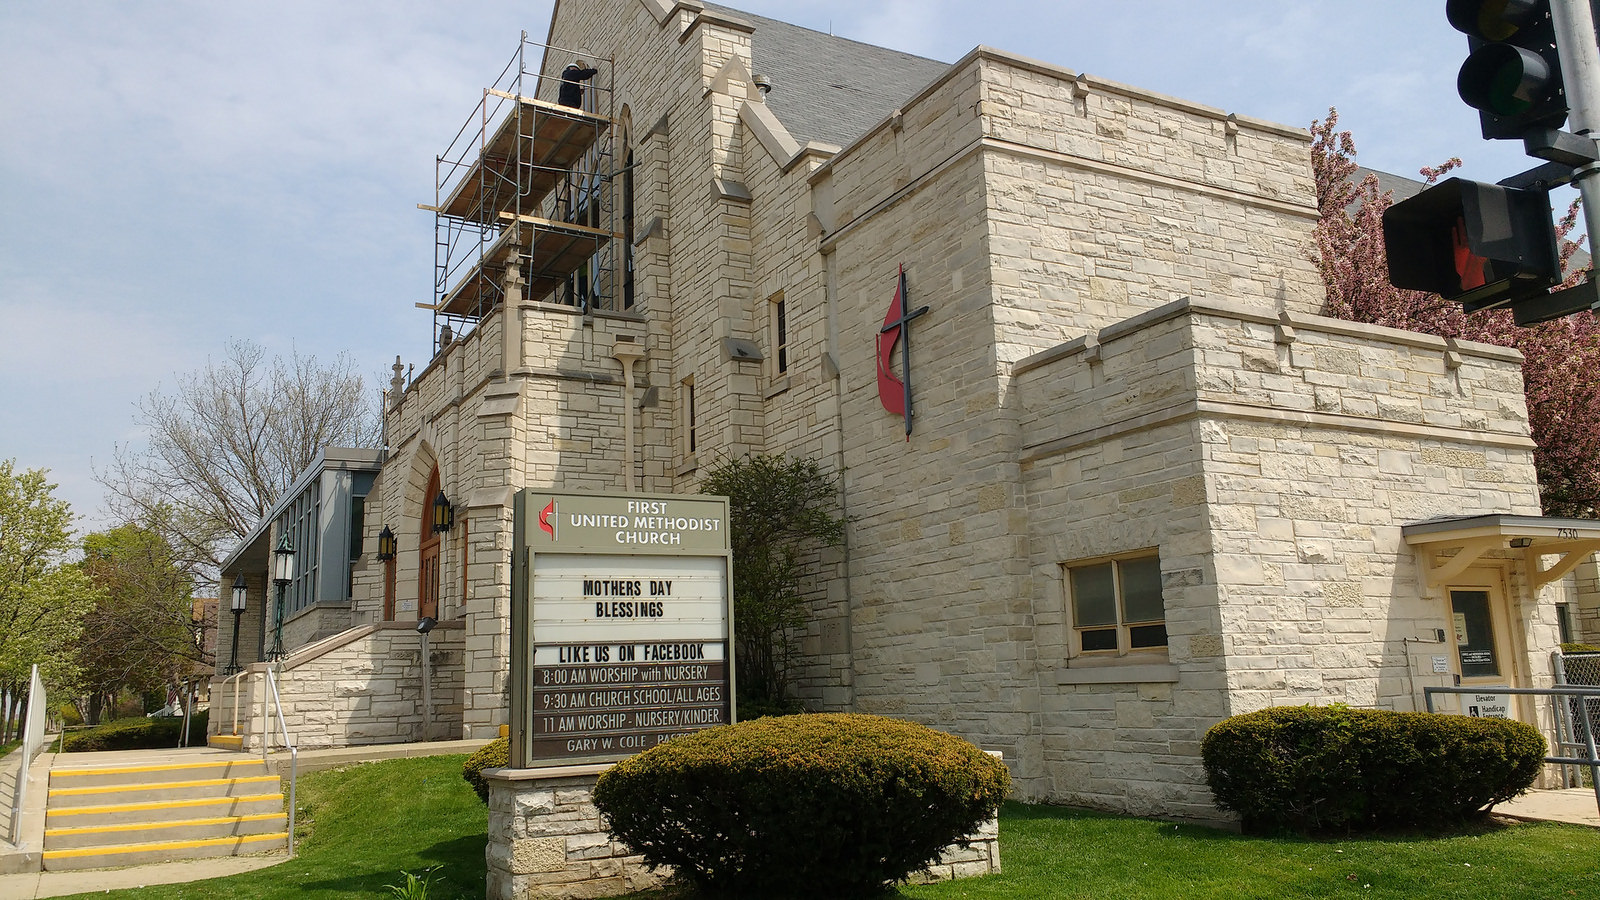 First United Methodist Church - West Allis, Wisconsin